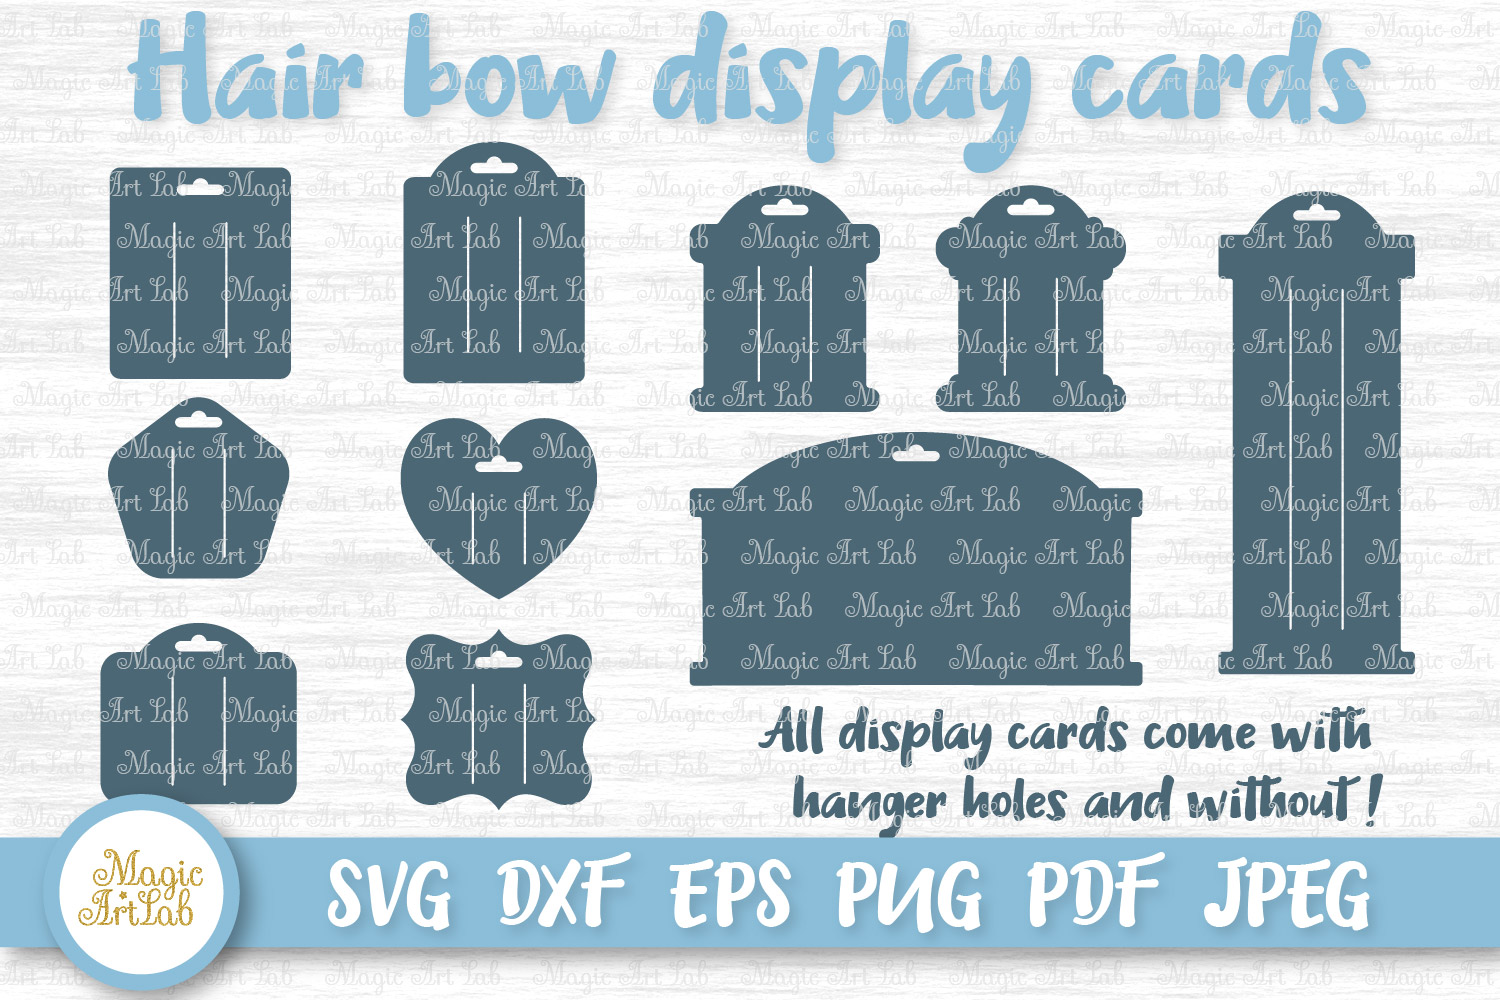 Download Free Hair Bow Cards Graphic By Magicartlab Creative Fabrica for Cricut Explore, Silhouette and other cutting machines.